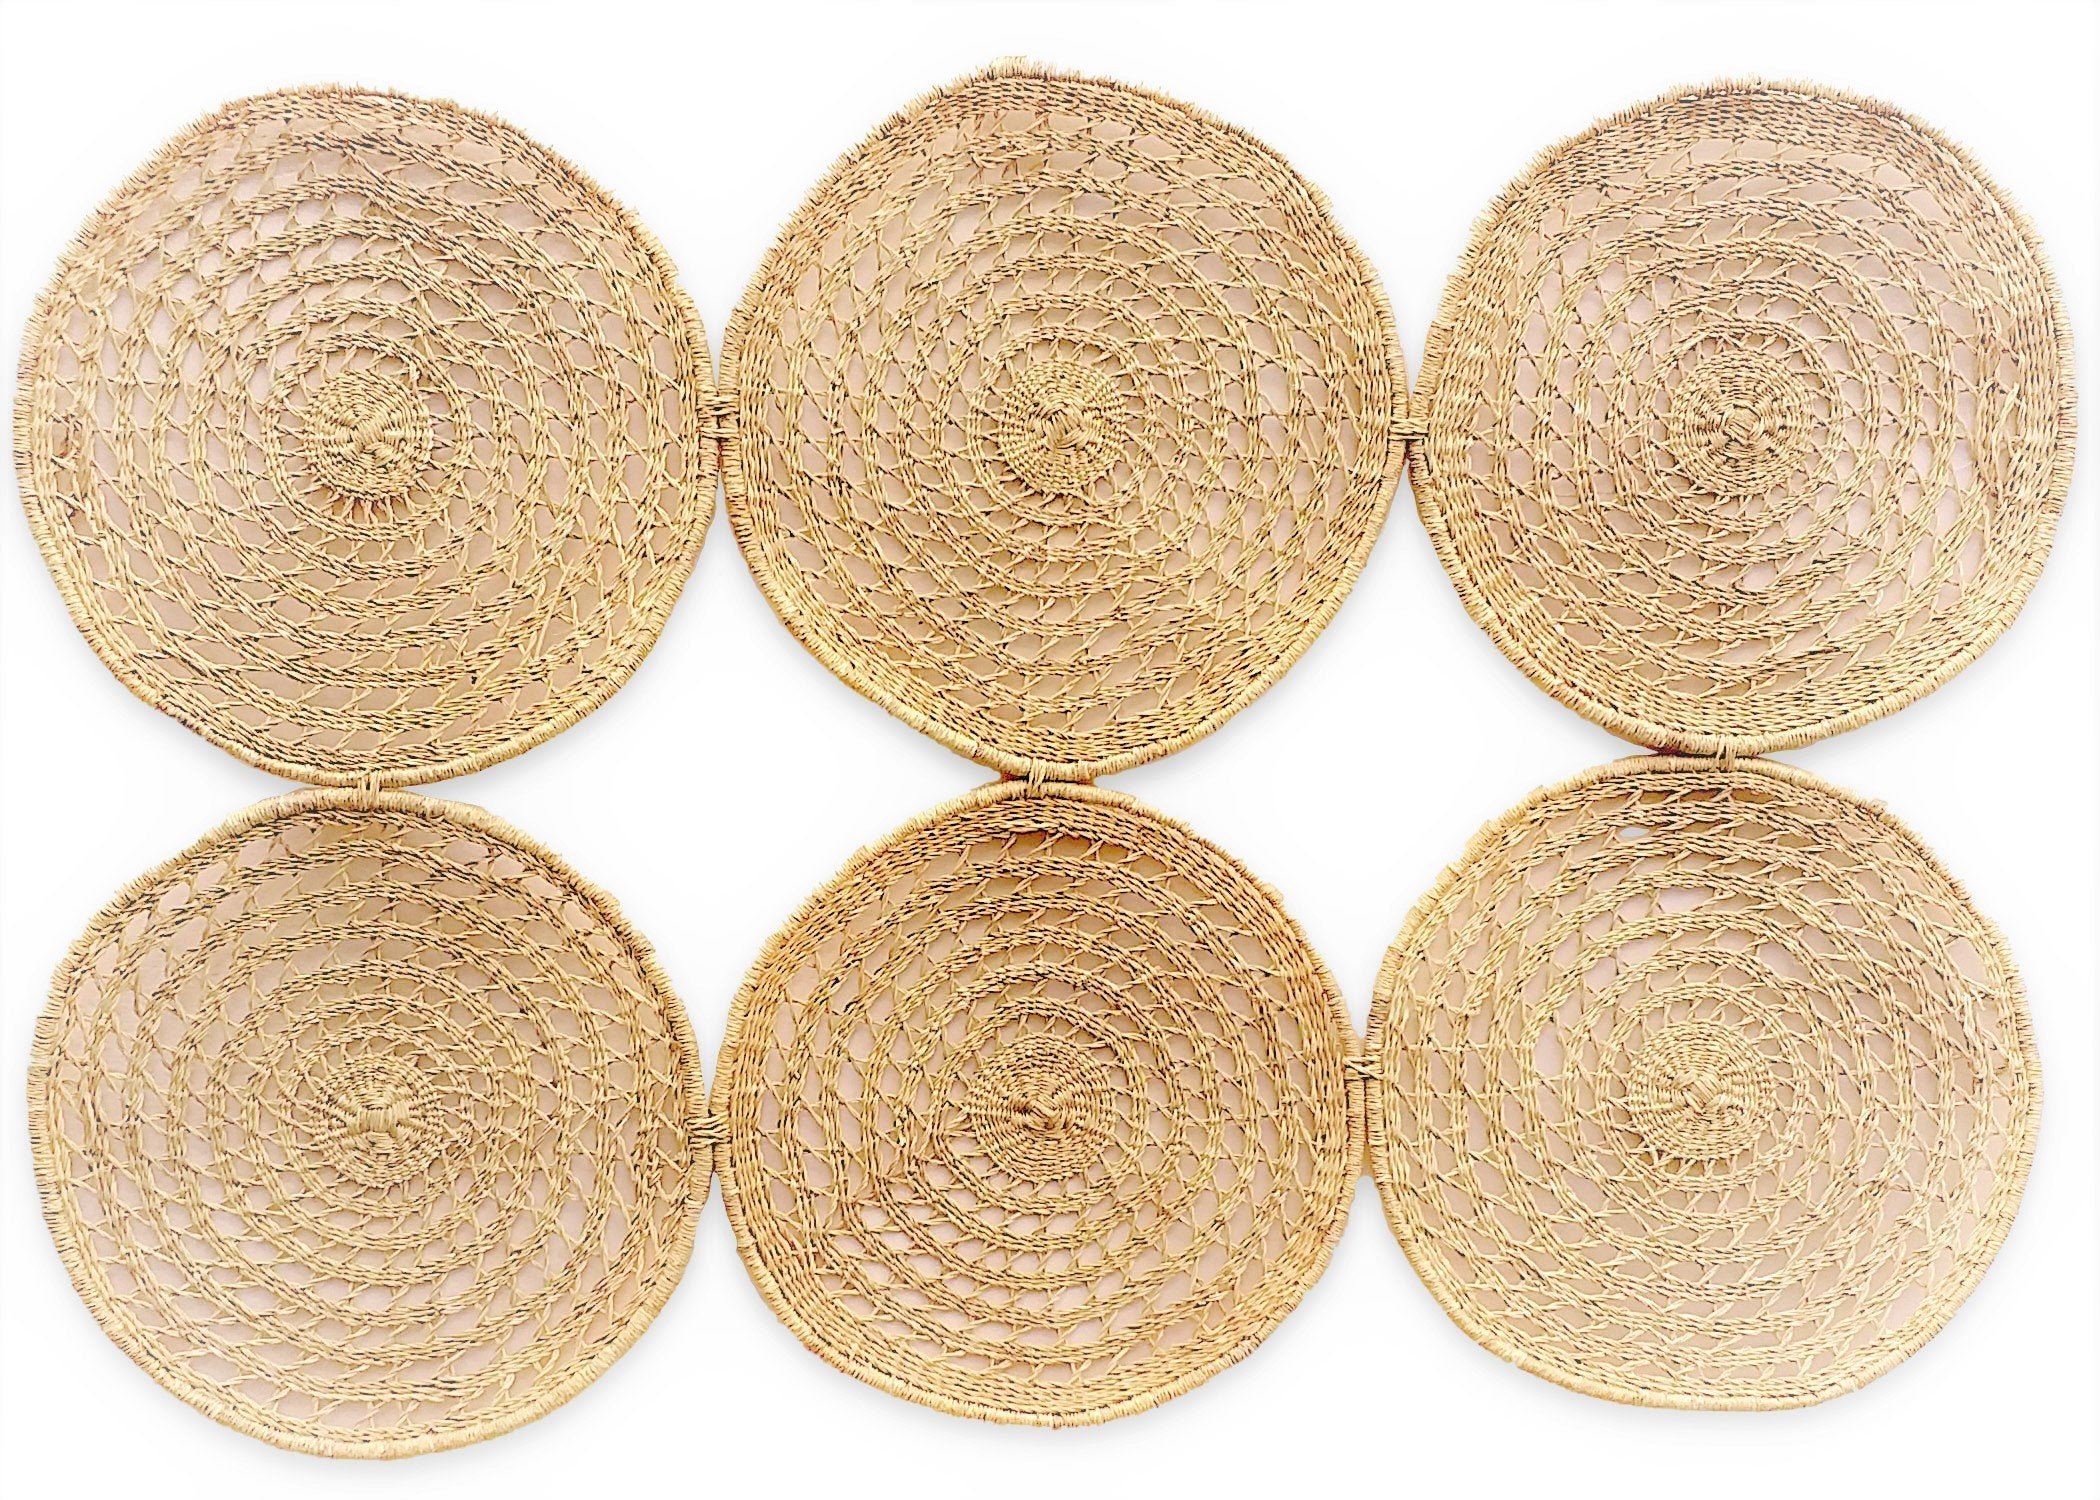 All Natural Woven Discs Queen Headboard - KAZI - Artisan made high quality home decor and wall art